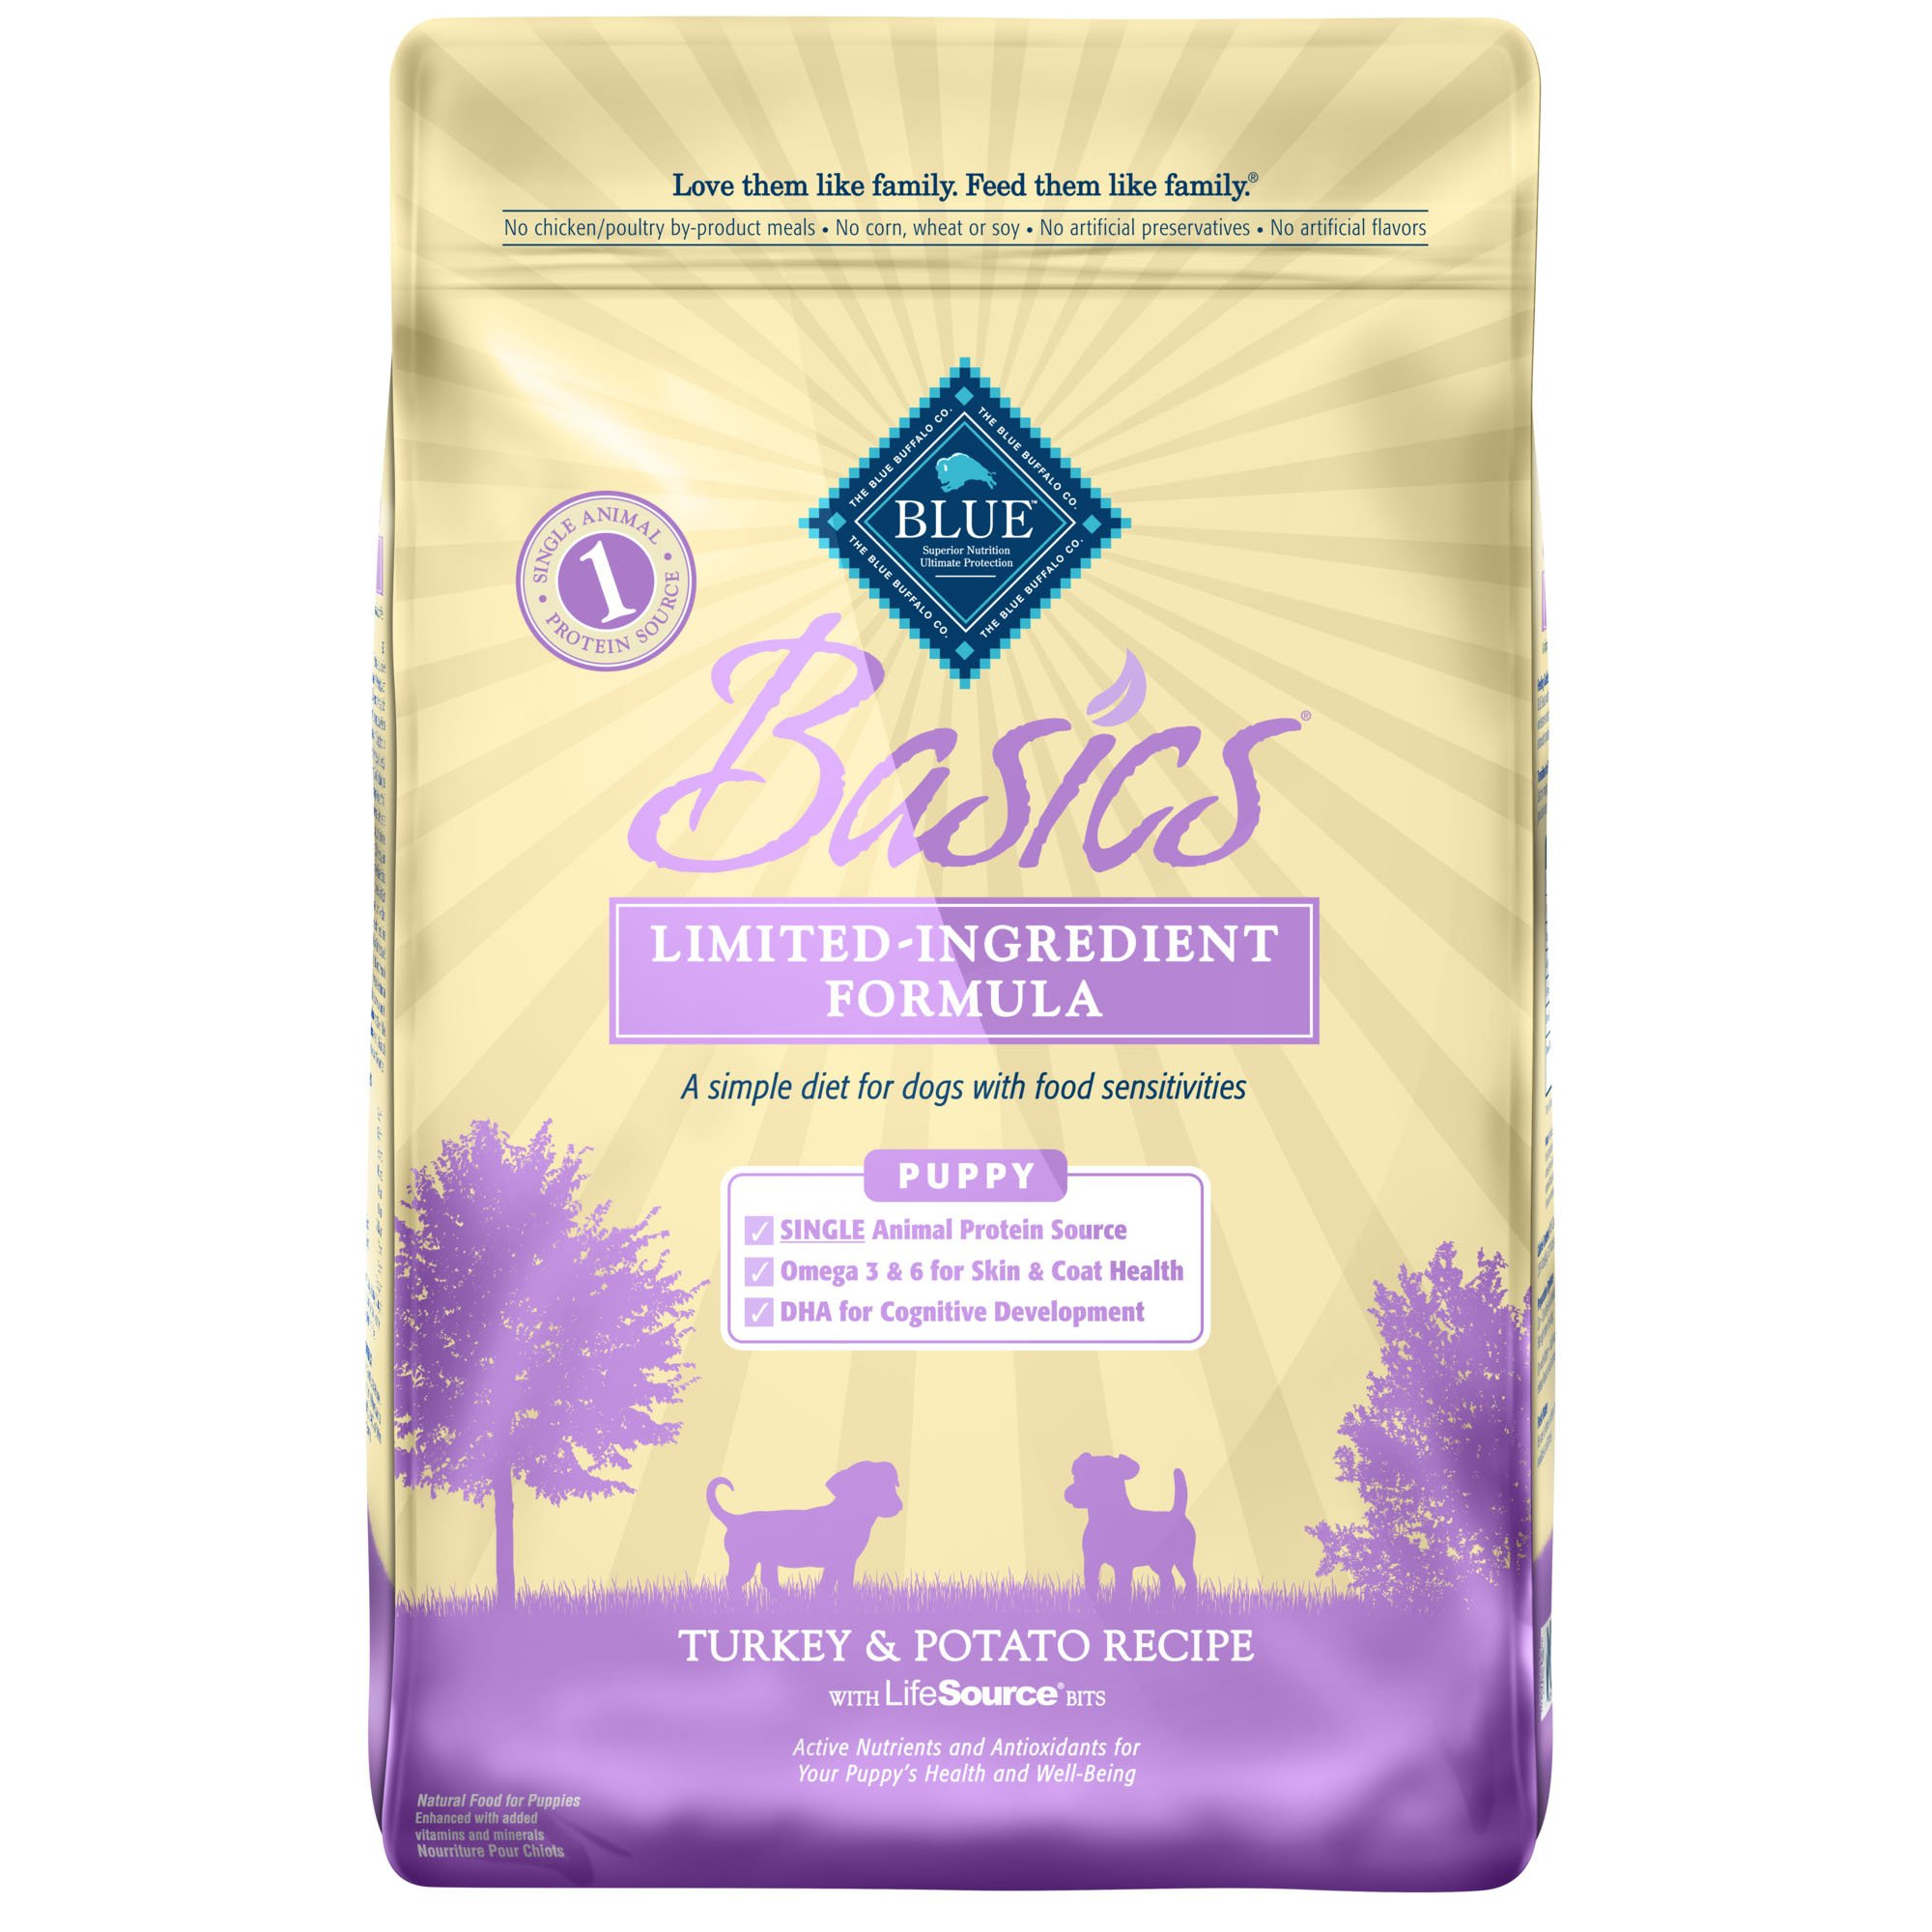 blue dog food for puppies